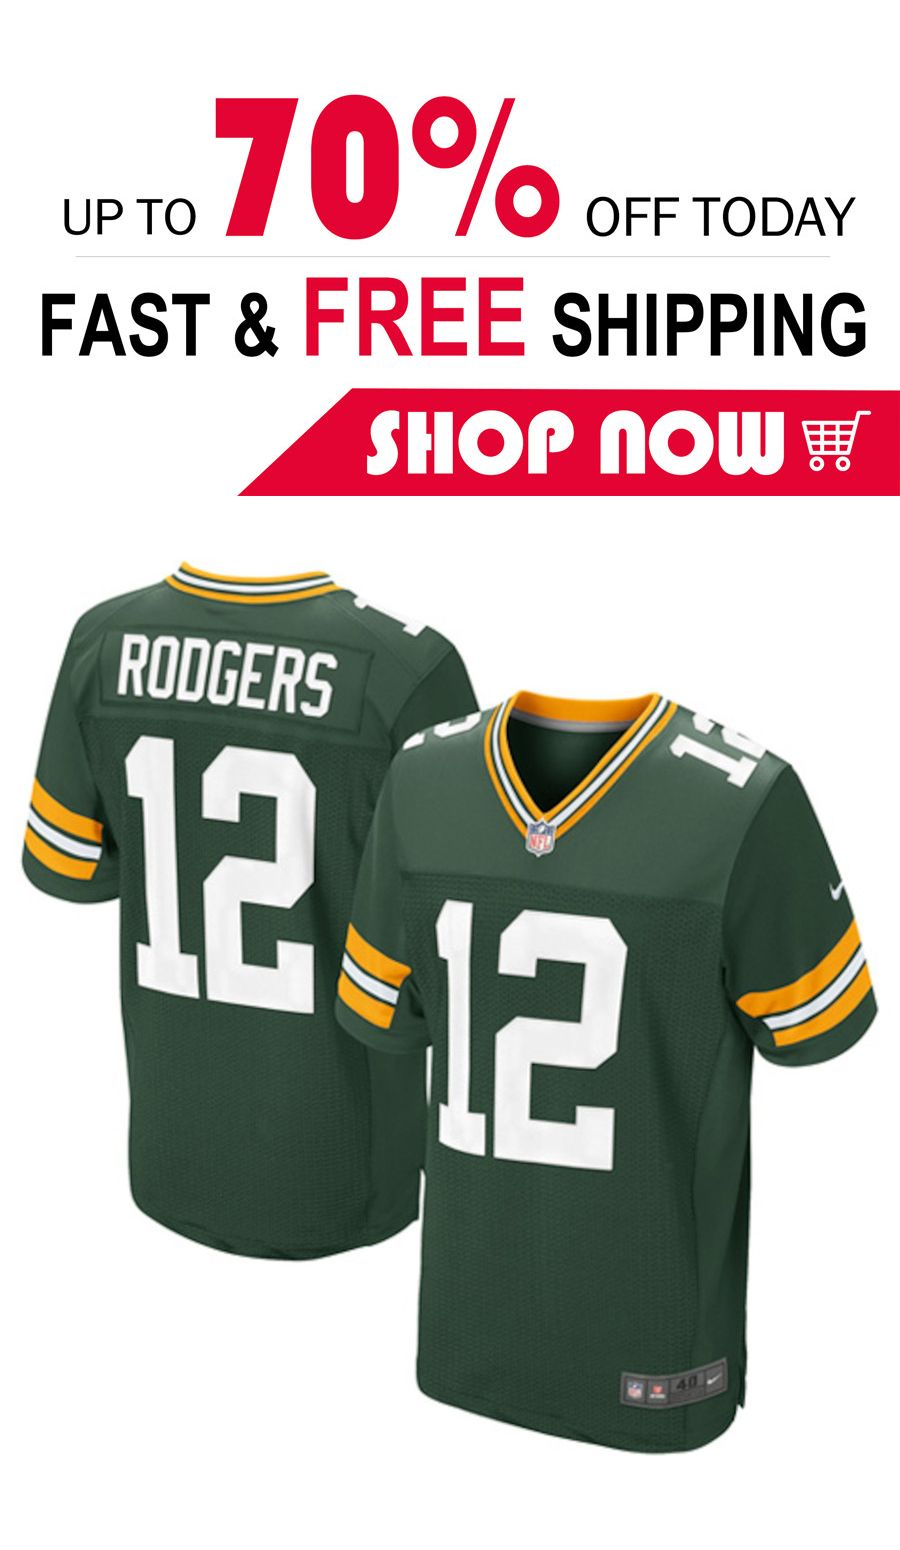 Mens Aaron Rodgers Green Bay Packers Football Jersey Green Bay Packers Football Green Bay Packers Jerseys Green Bay Packers